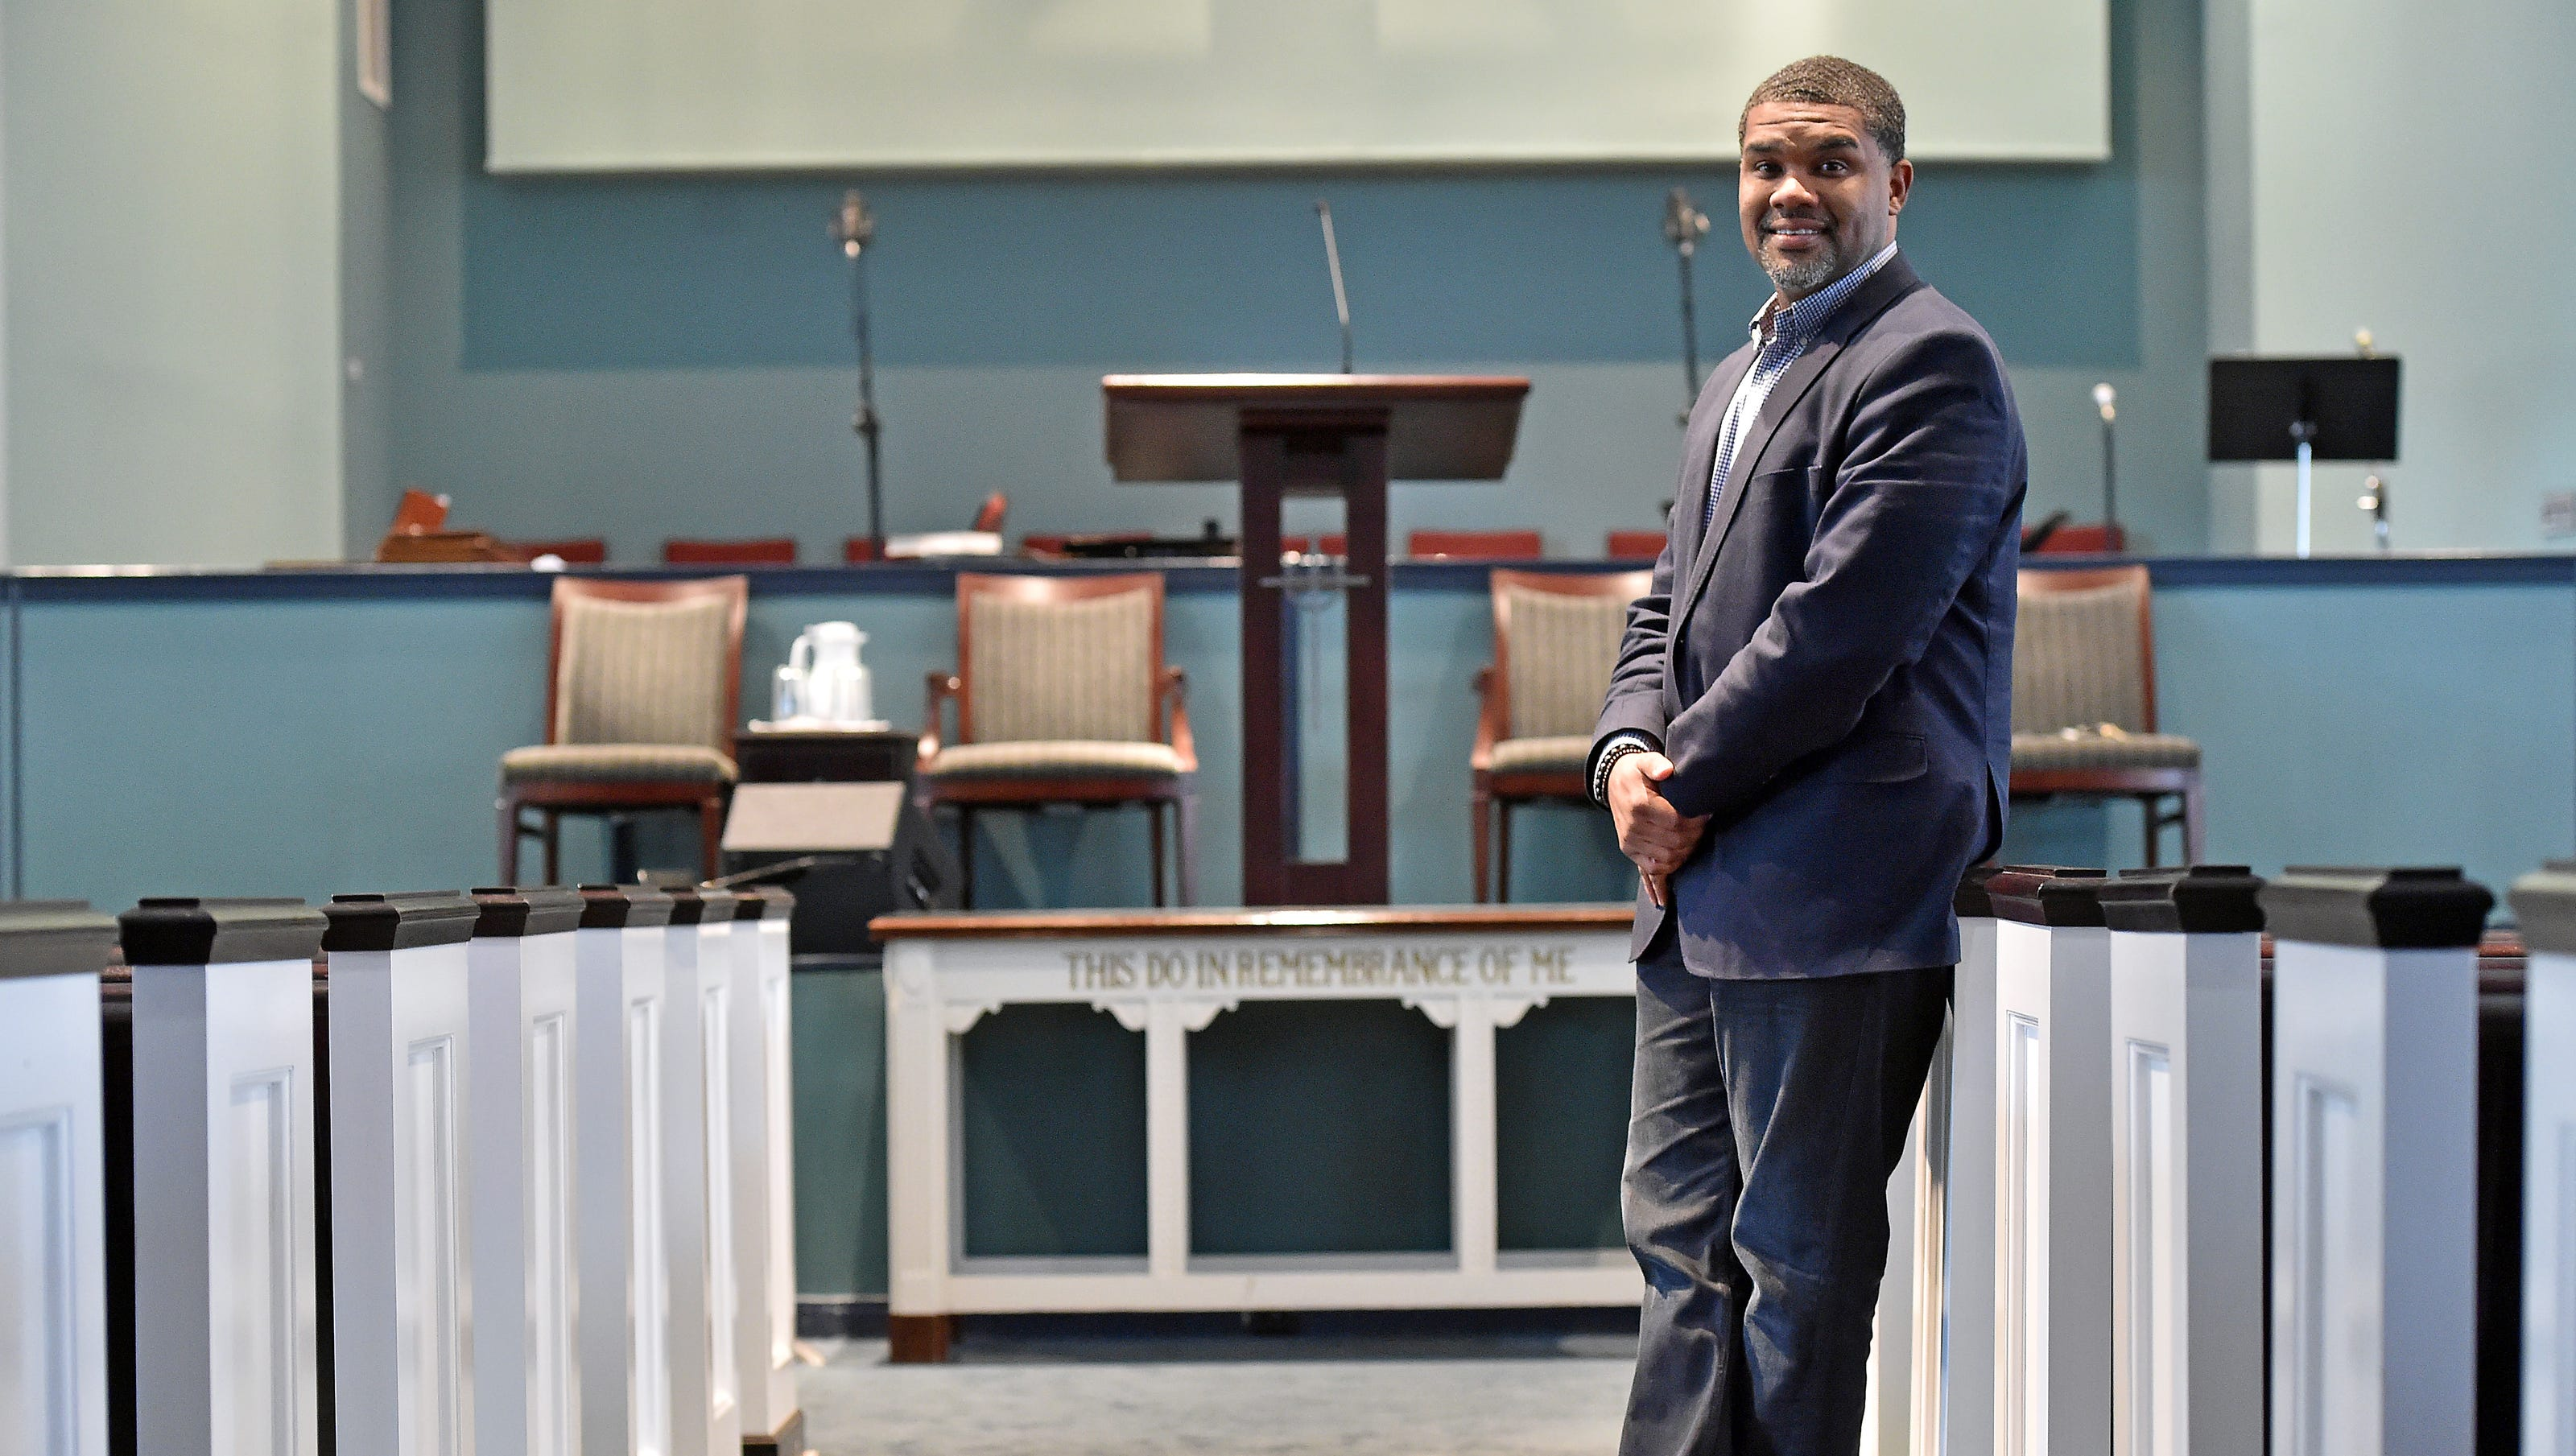 Jackson S Redeemer Church Giving Up Preferences In Favor Of Diversity